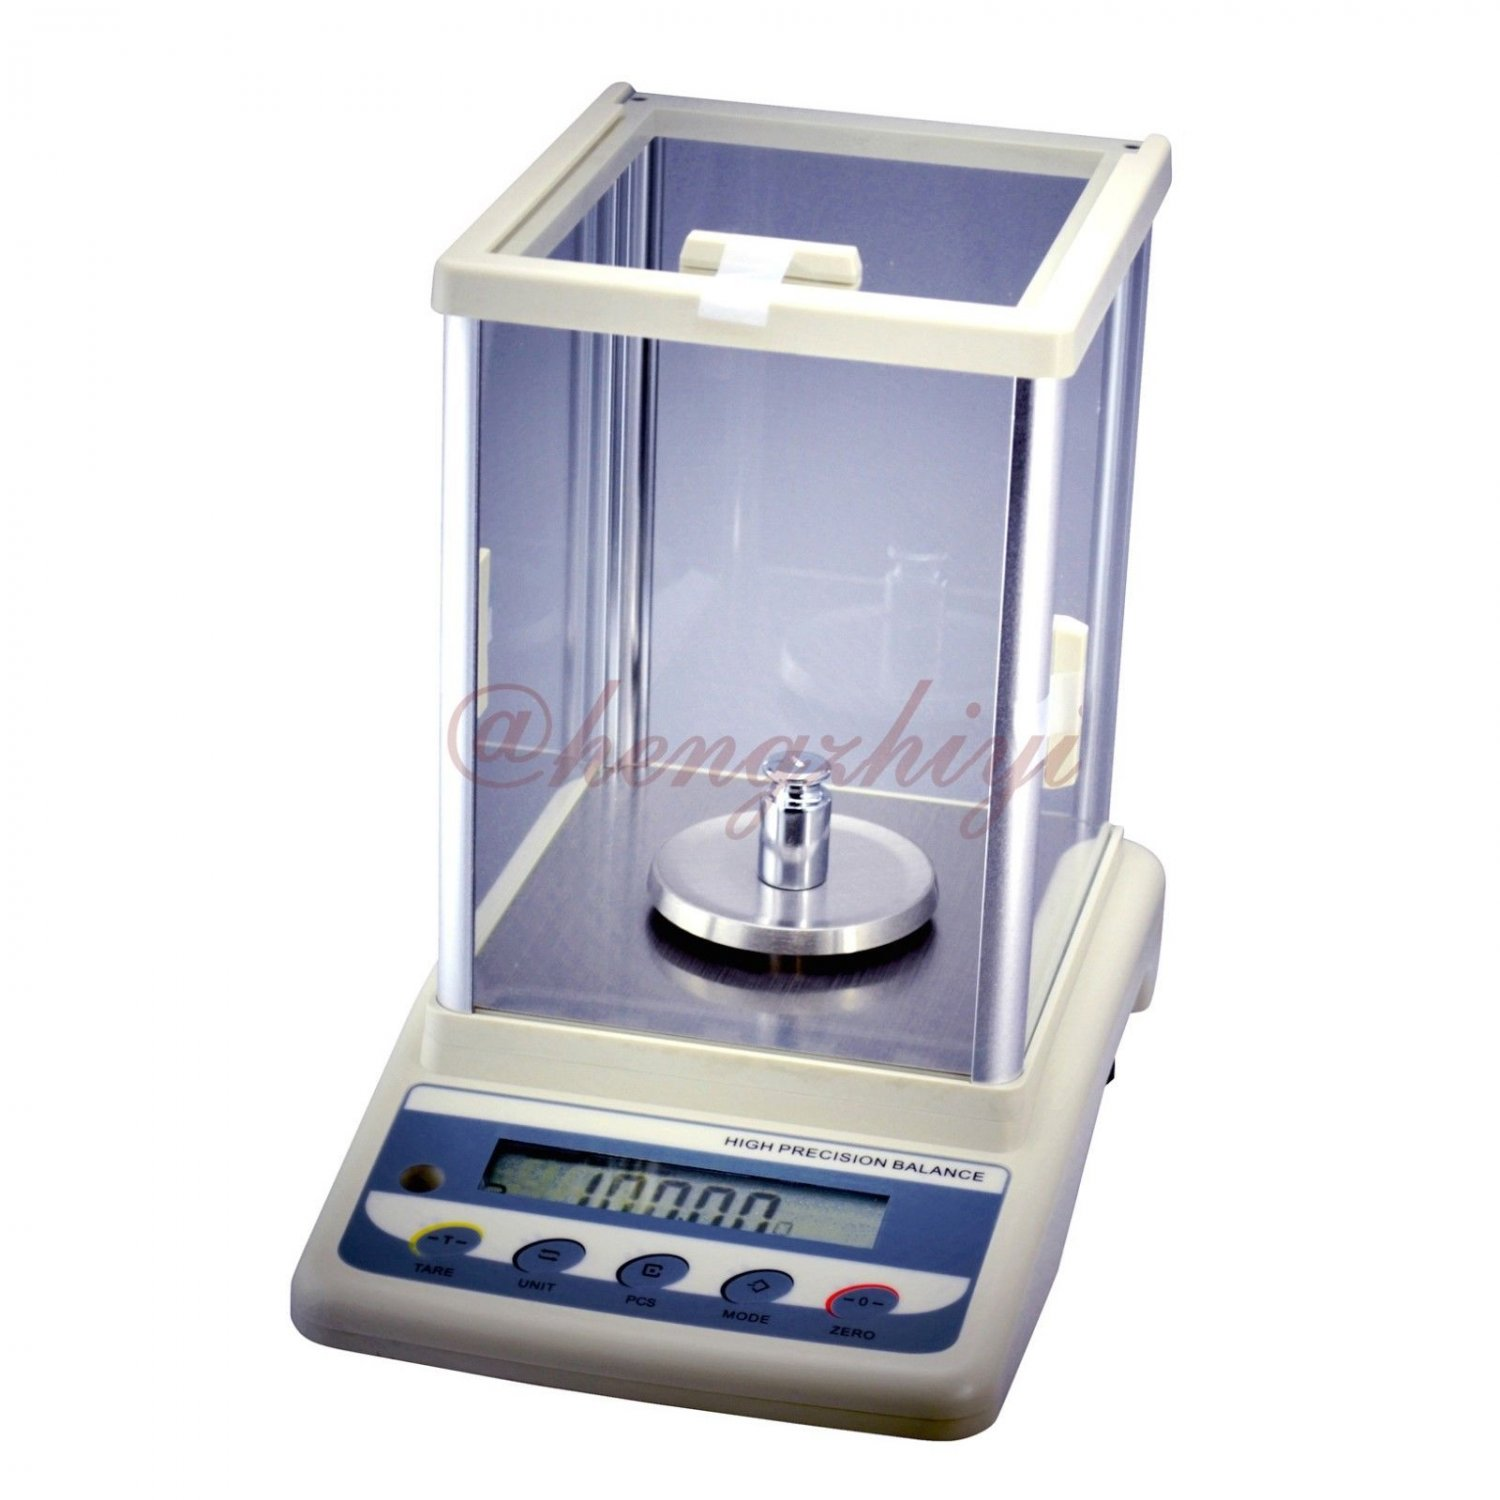 2000g x 0.01g Digital Precision Balance w Wind Shield Germany Sensor + RS232 Interface 2kg